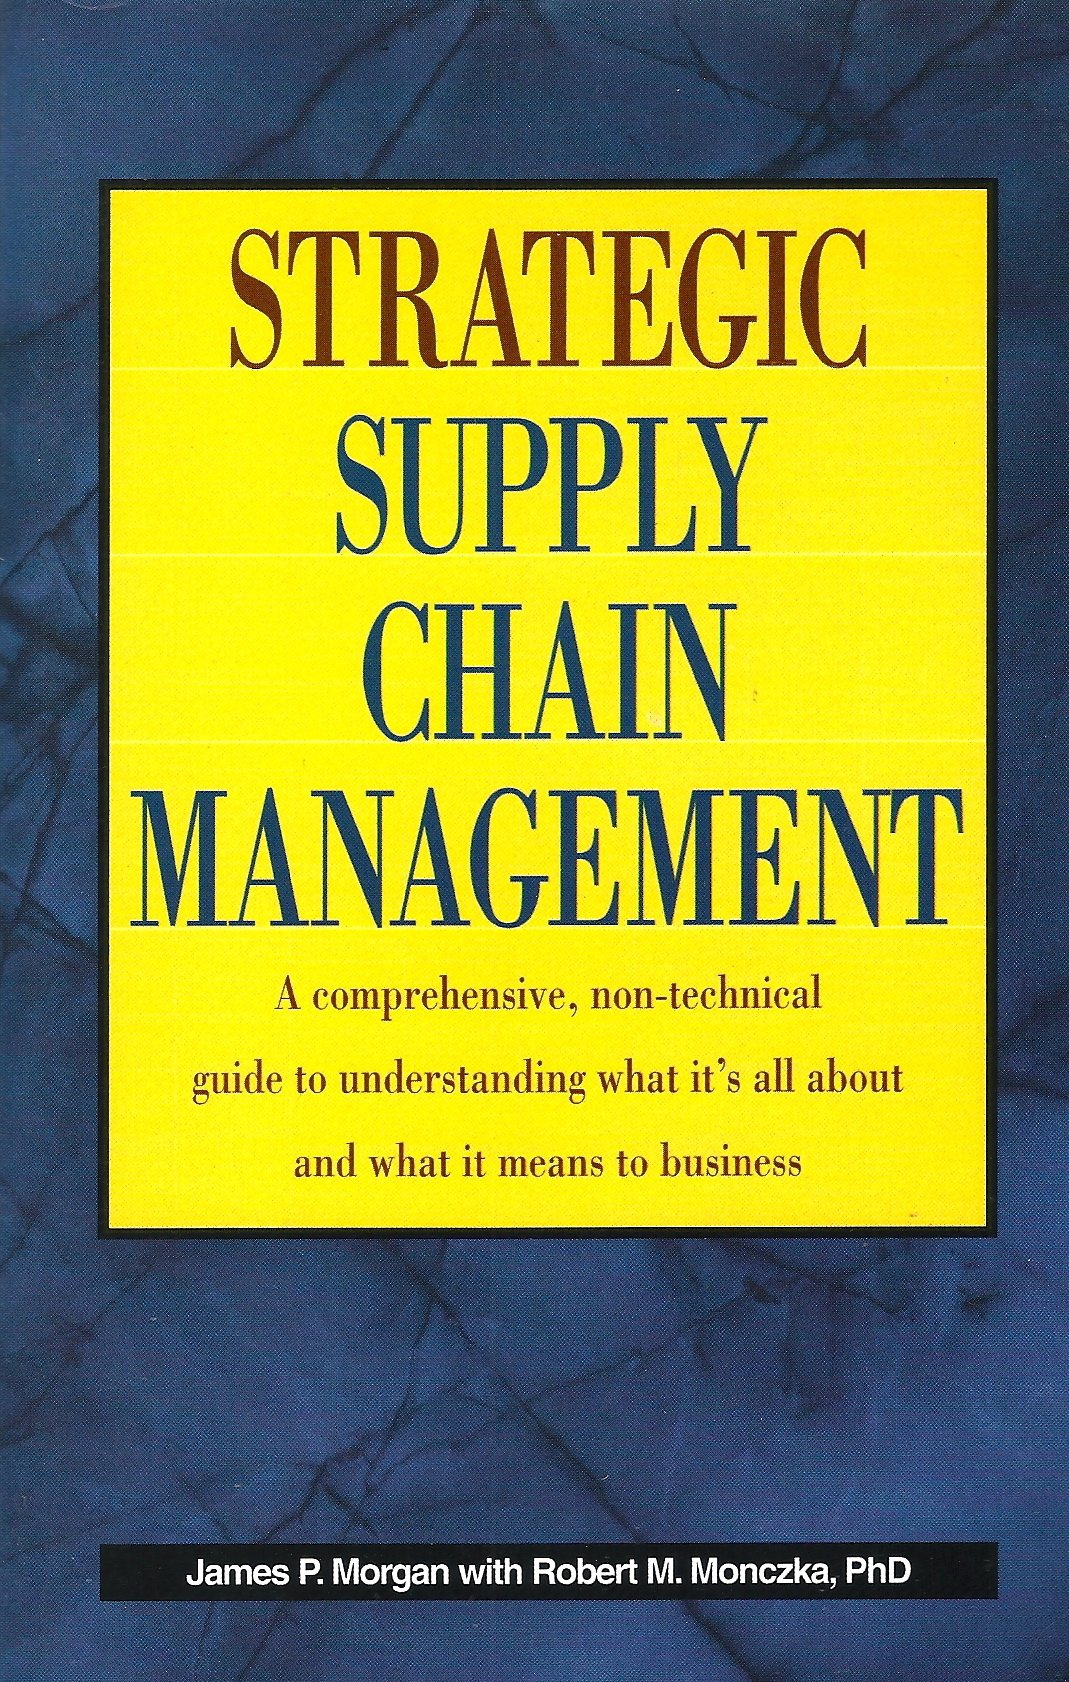 Download Strategic Supply Chain Management: A comprehensive, non-technical guide to understanding what it's all about and what it means to business ebook